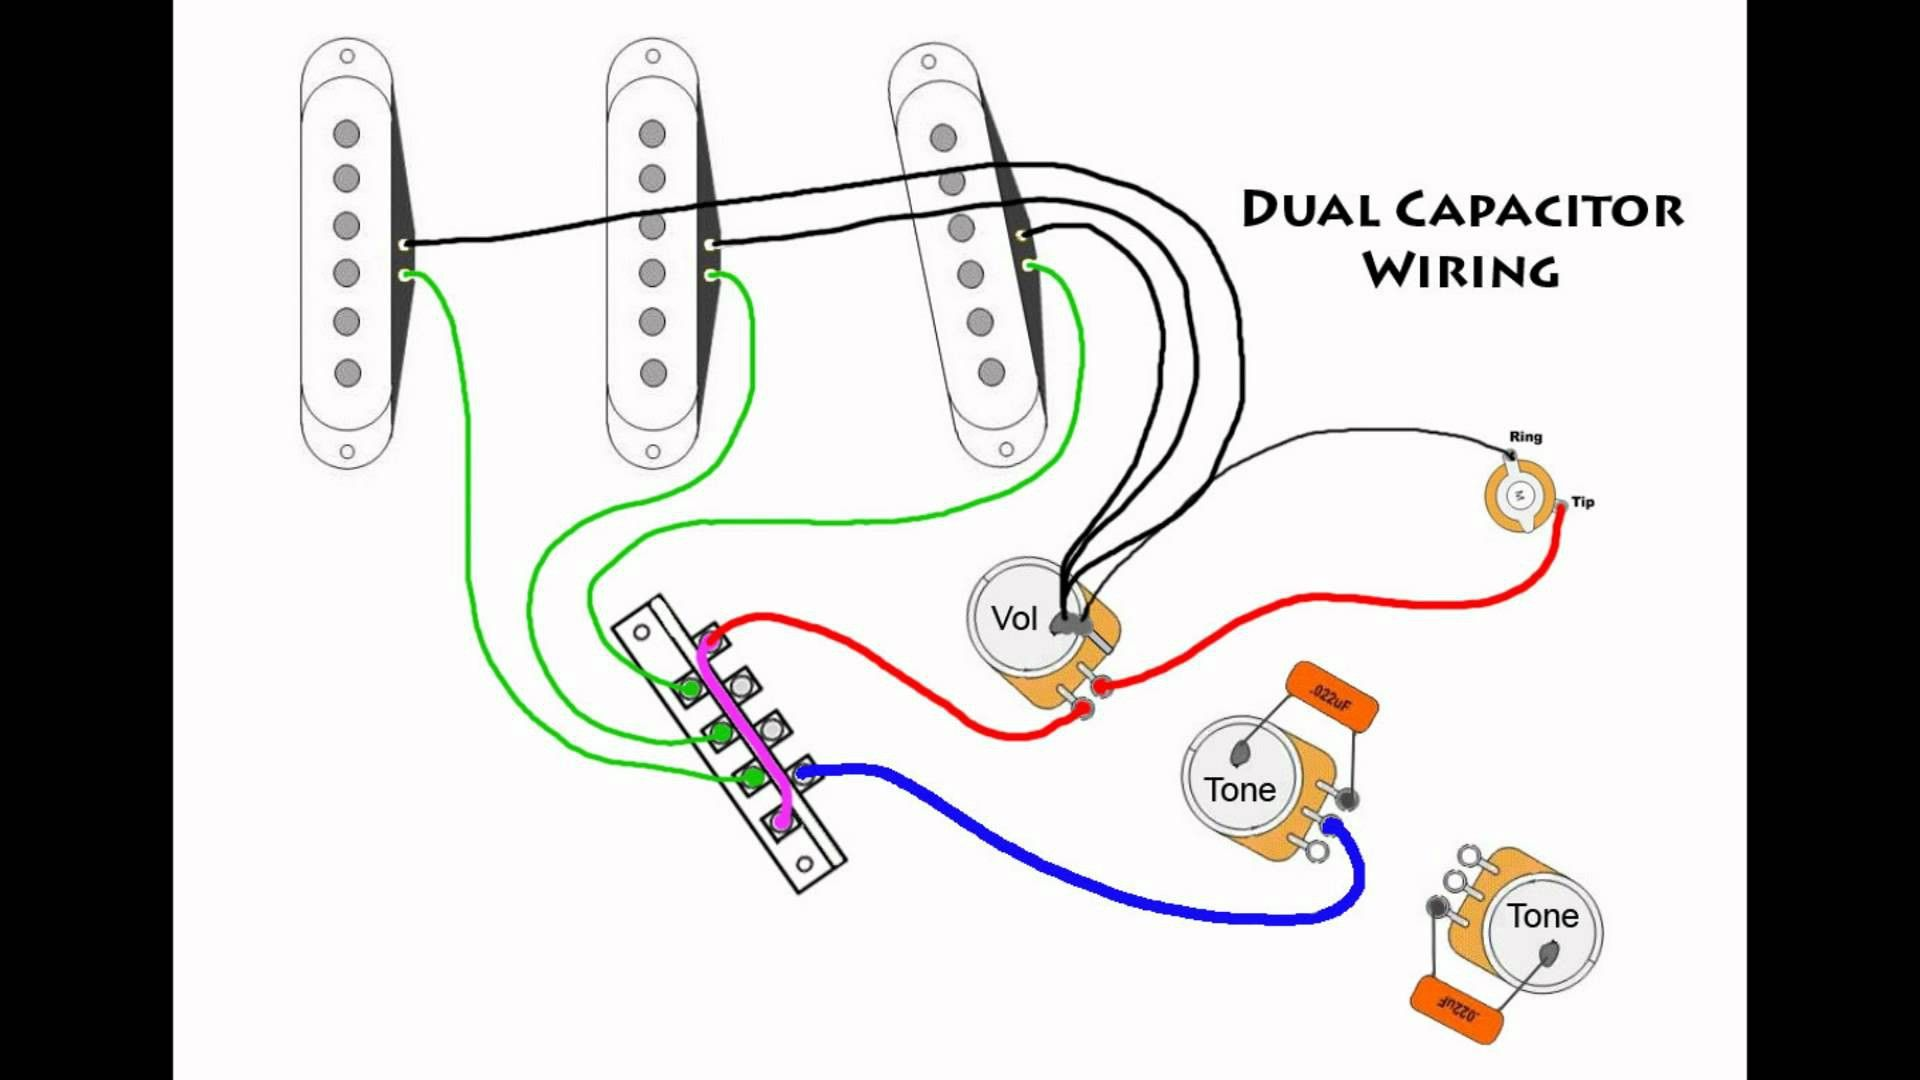 fender stratocaster wiring diagram best of strat throughout diagramsfender stratocaster wiring diagram best of strat throughout [ 1920 x 1080 Pixel ]